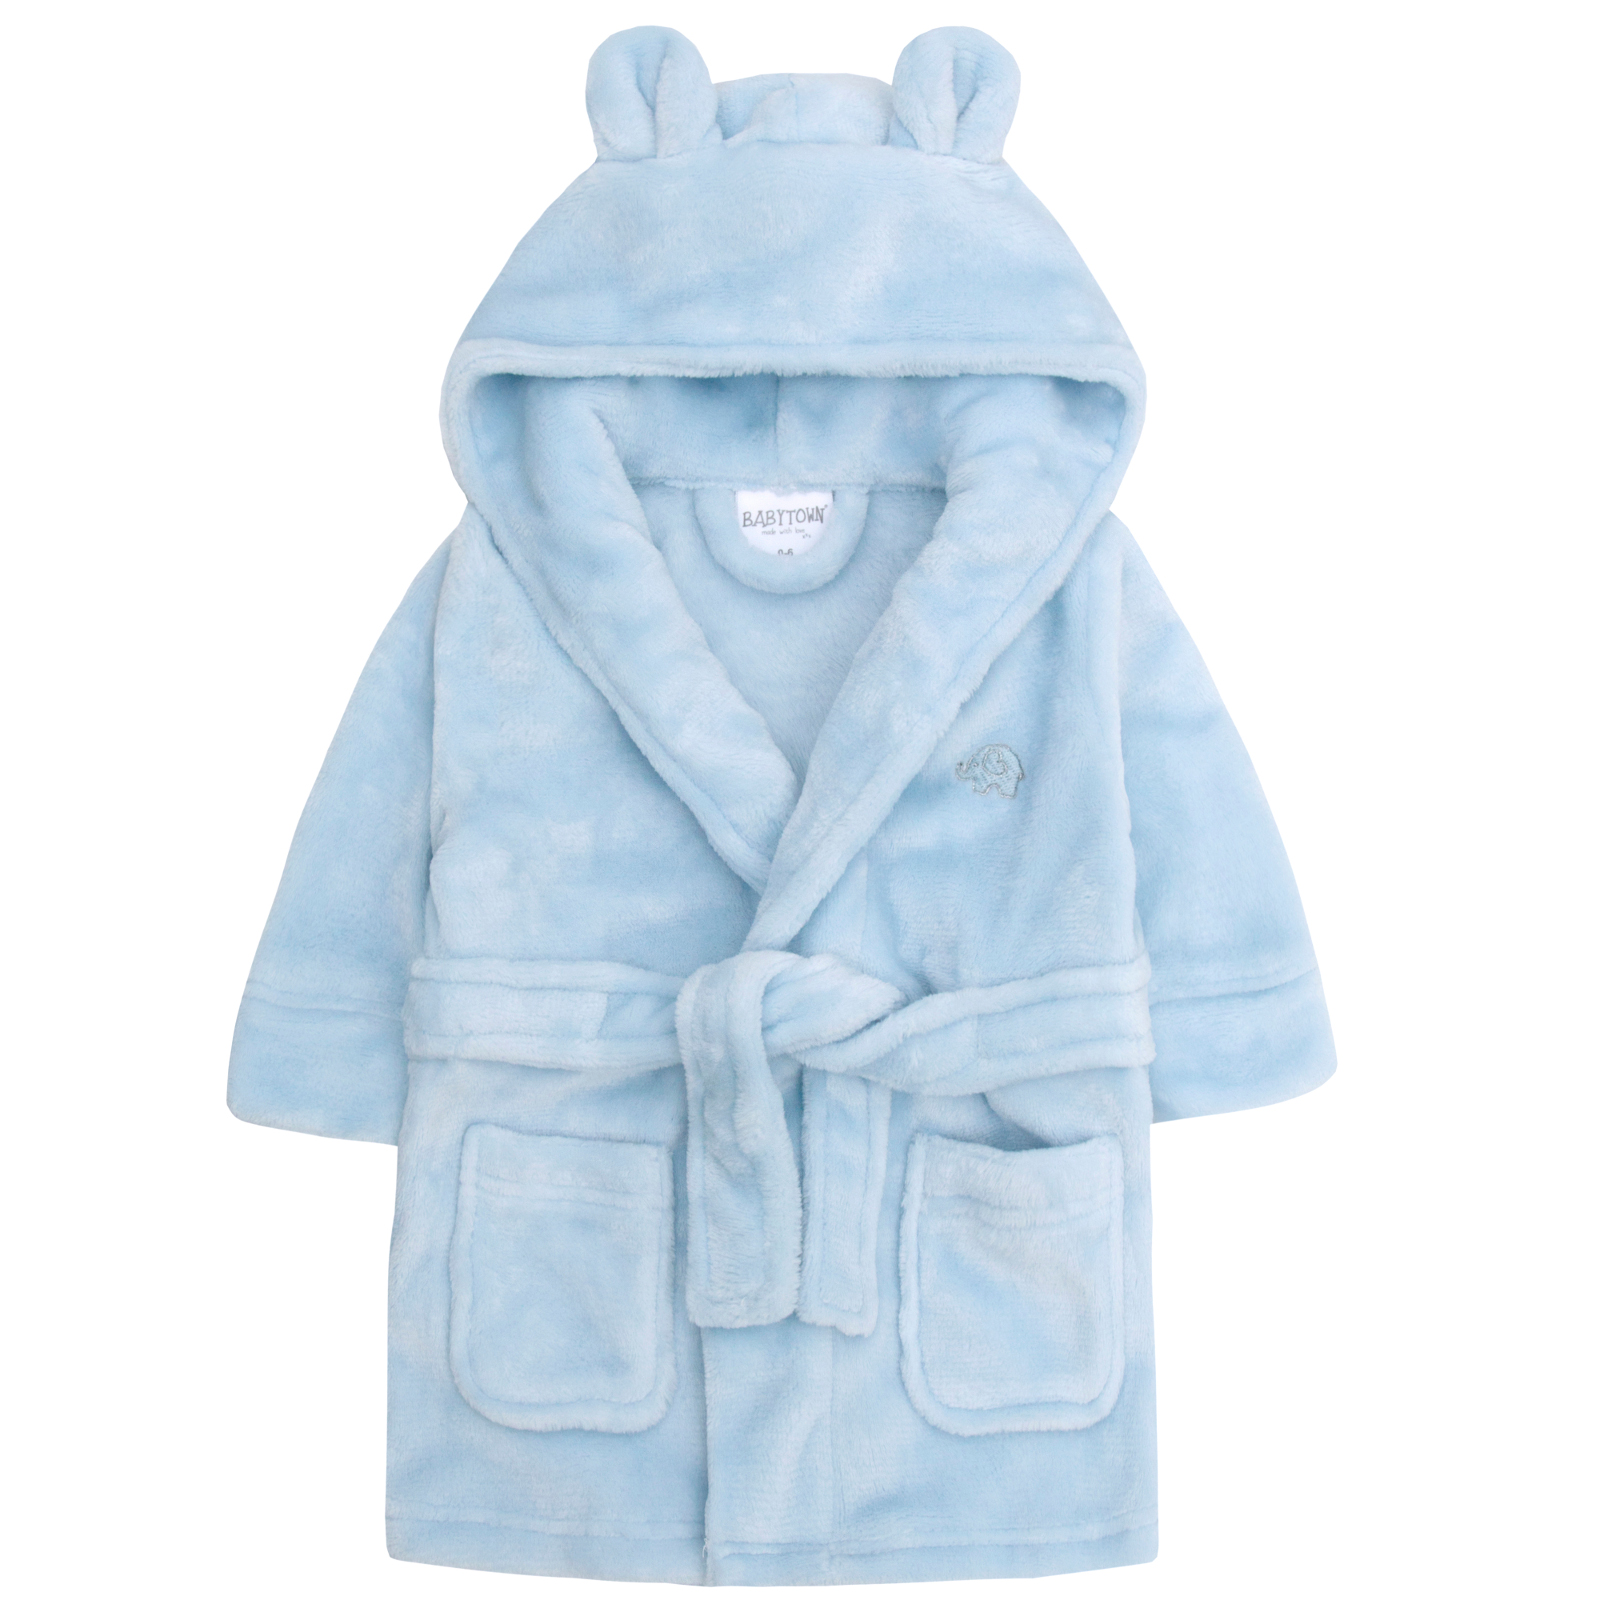 3D-Baby-Girls-Boys-Toddlers-Cute-Novelty-Animal-Hooded-Fleece-Dressing-Gown-Robe